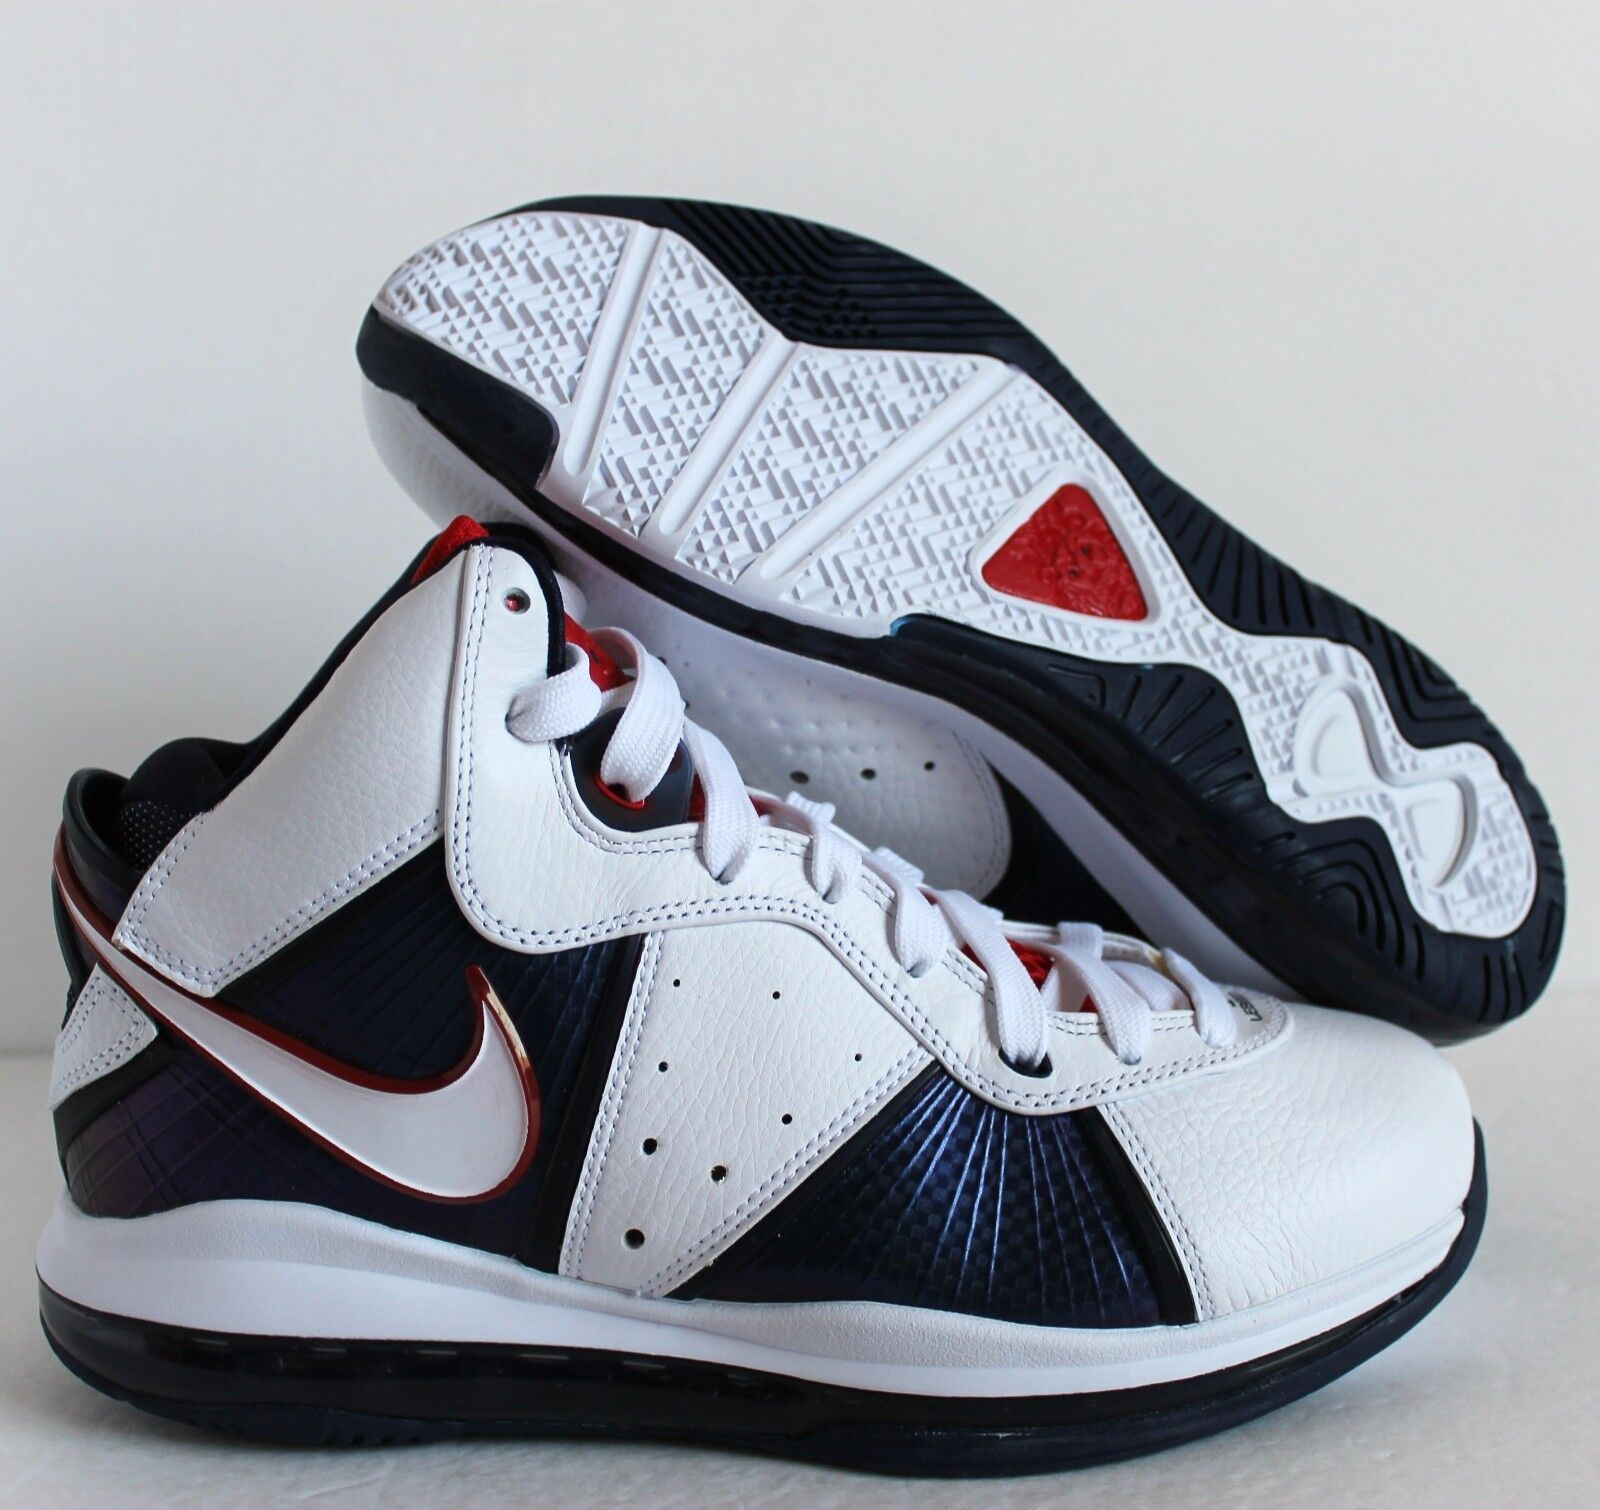 NIKE 2010 LEBRON 8 USA WHITE-MIDNIGHT NAVY-VARSITY RED SZ 8 [417098-100]